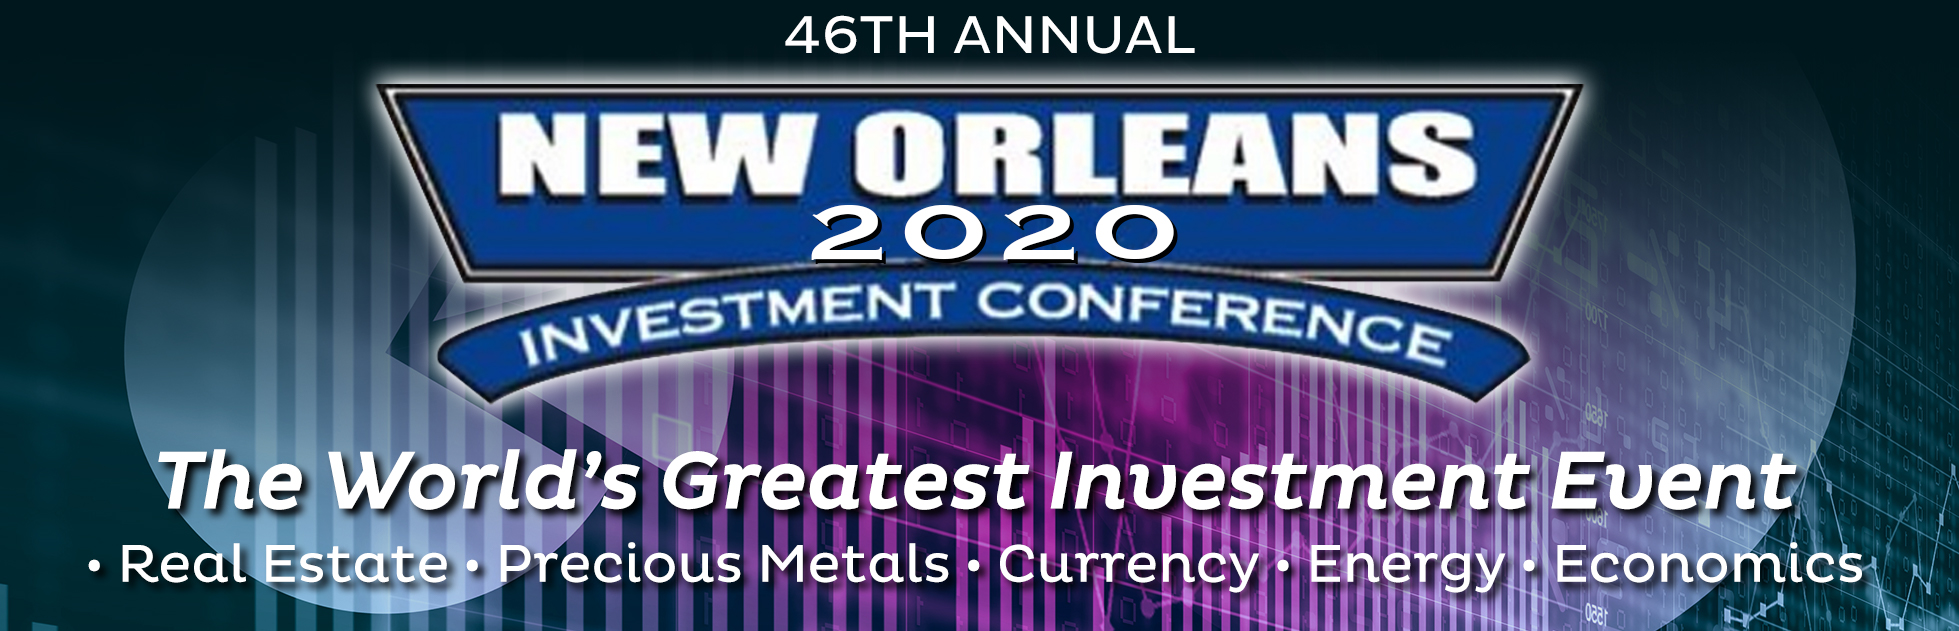 New Orleans Events May 2020.New Orleans Events October 2019 New Orleans Investment